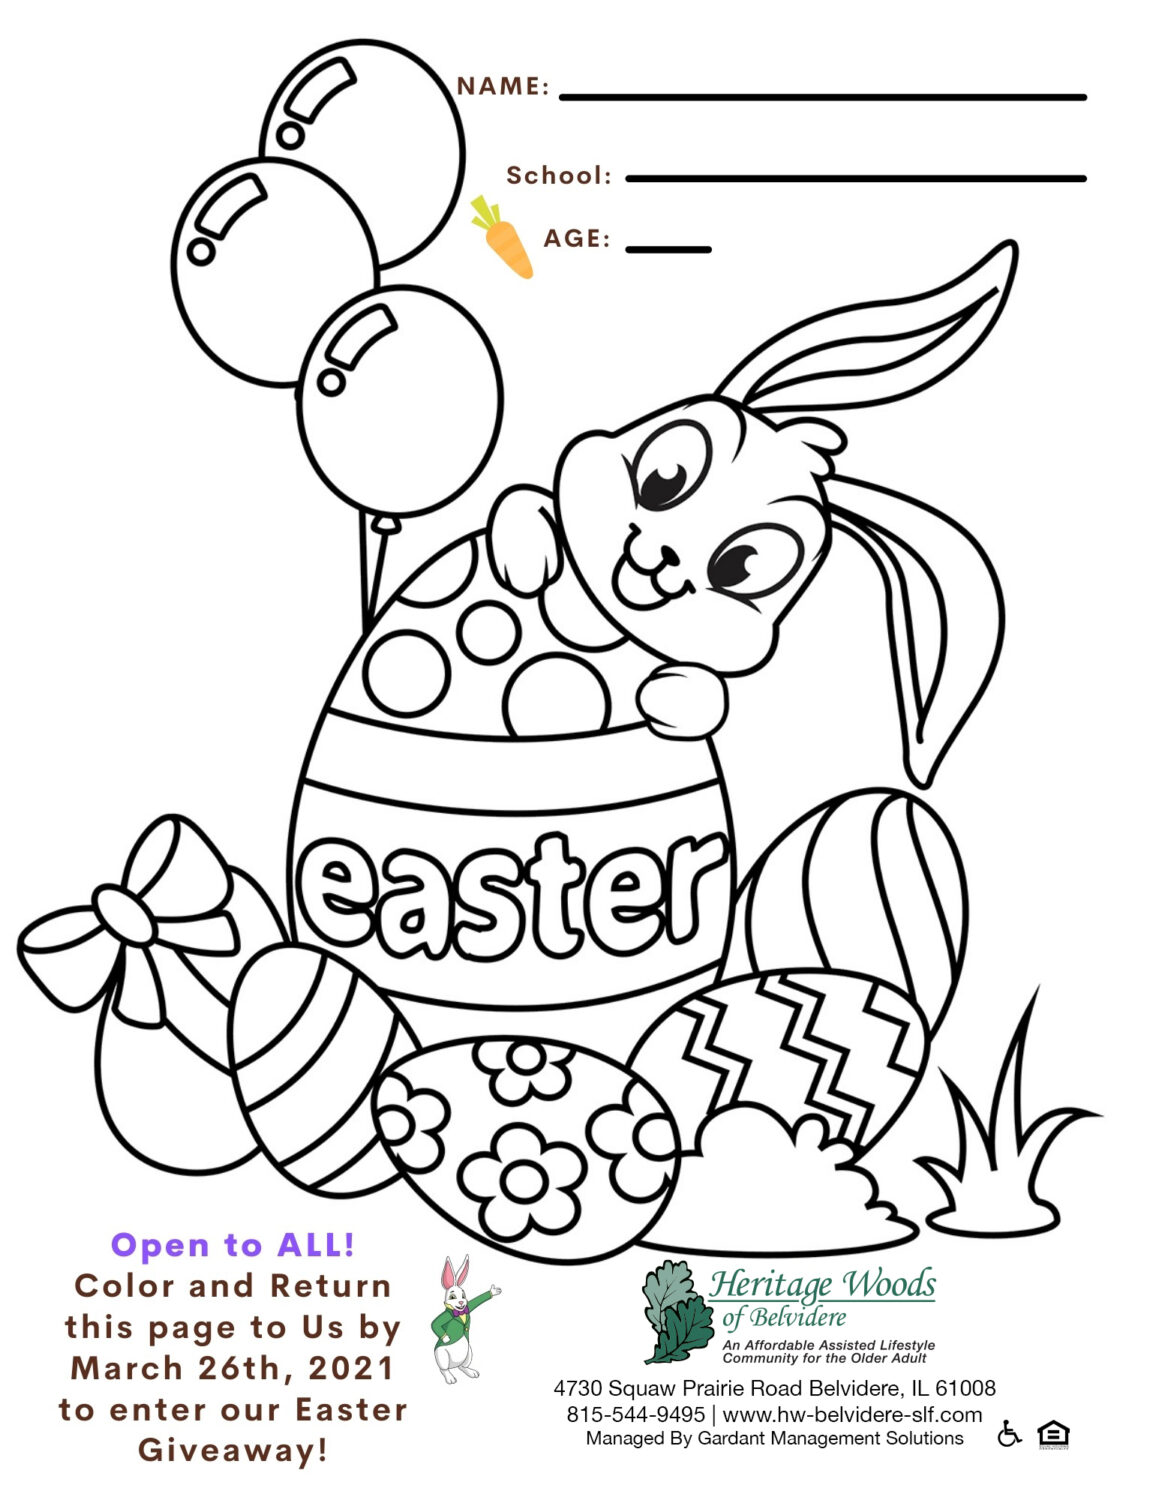 Easter Coloring Contest!